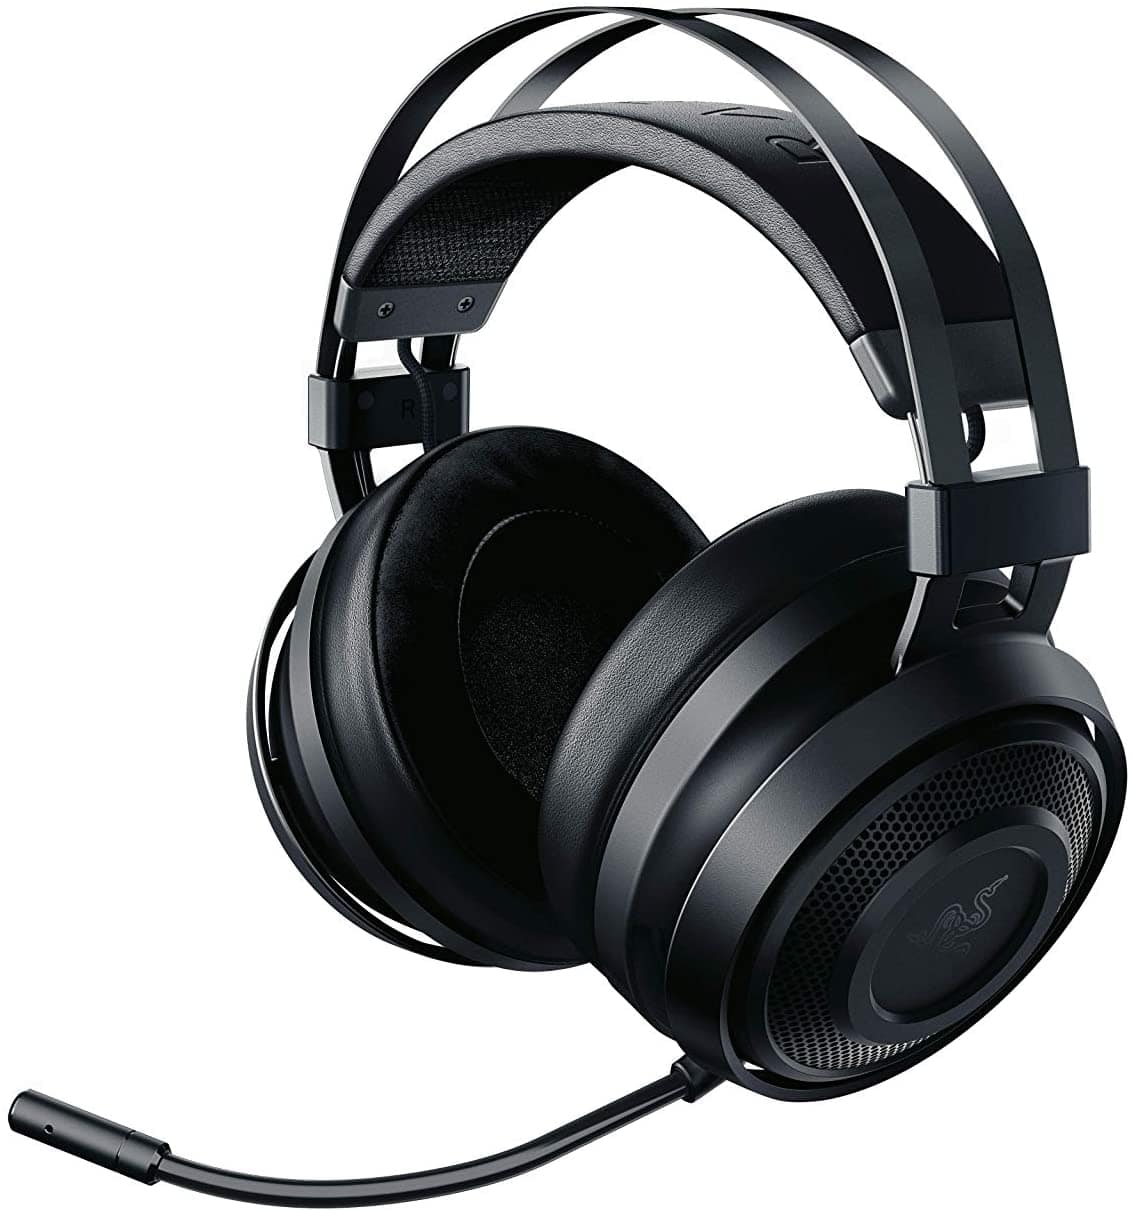 Razer Nari Essential 2.4GHz Wireless 7.1 Surround Sound Gaming Headset